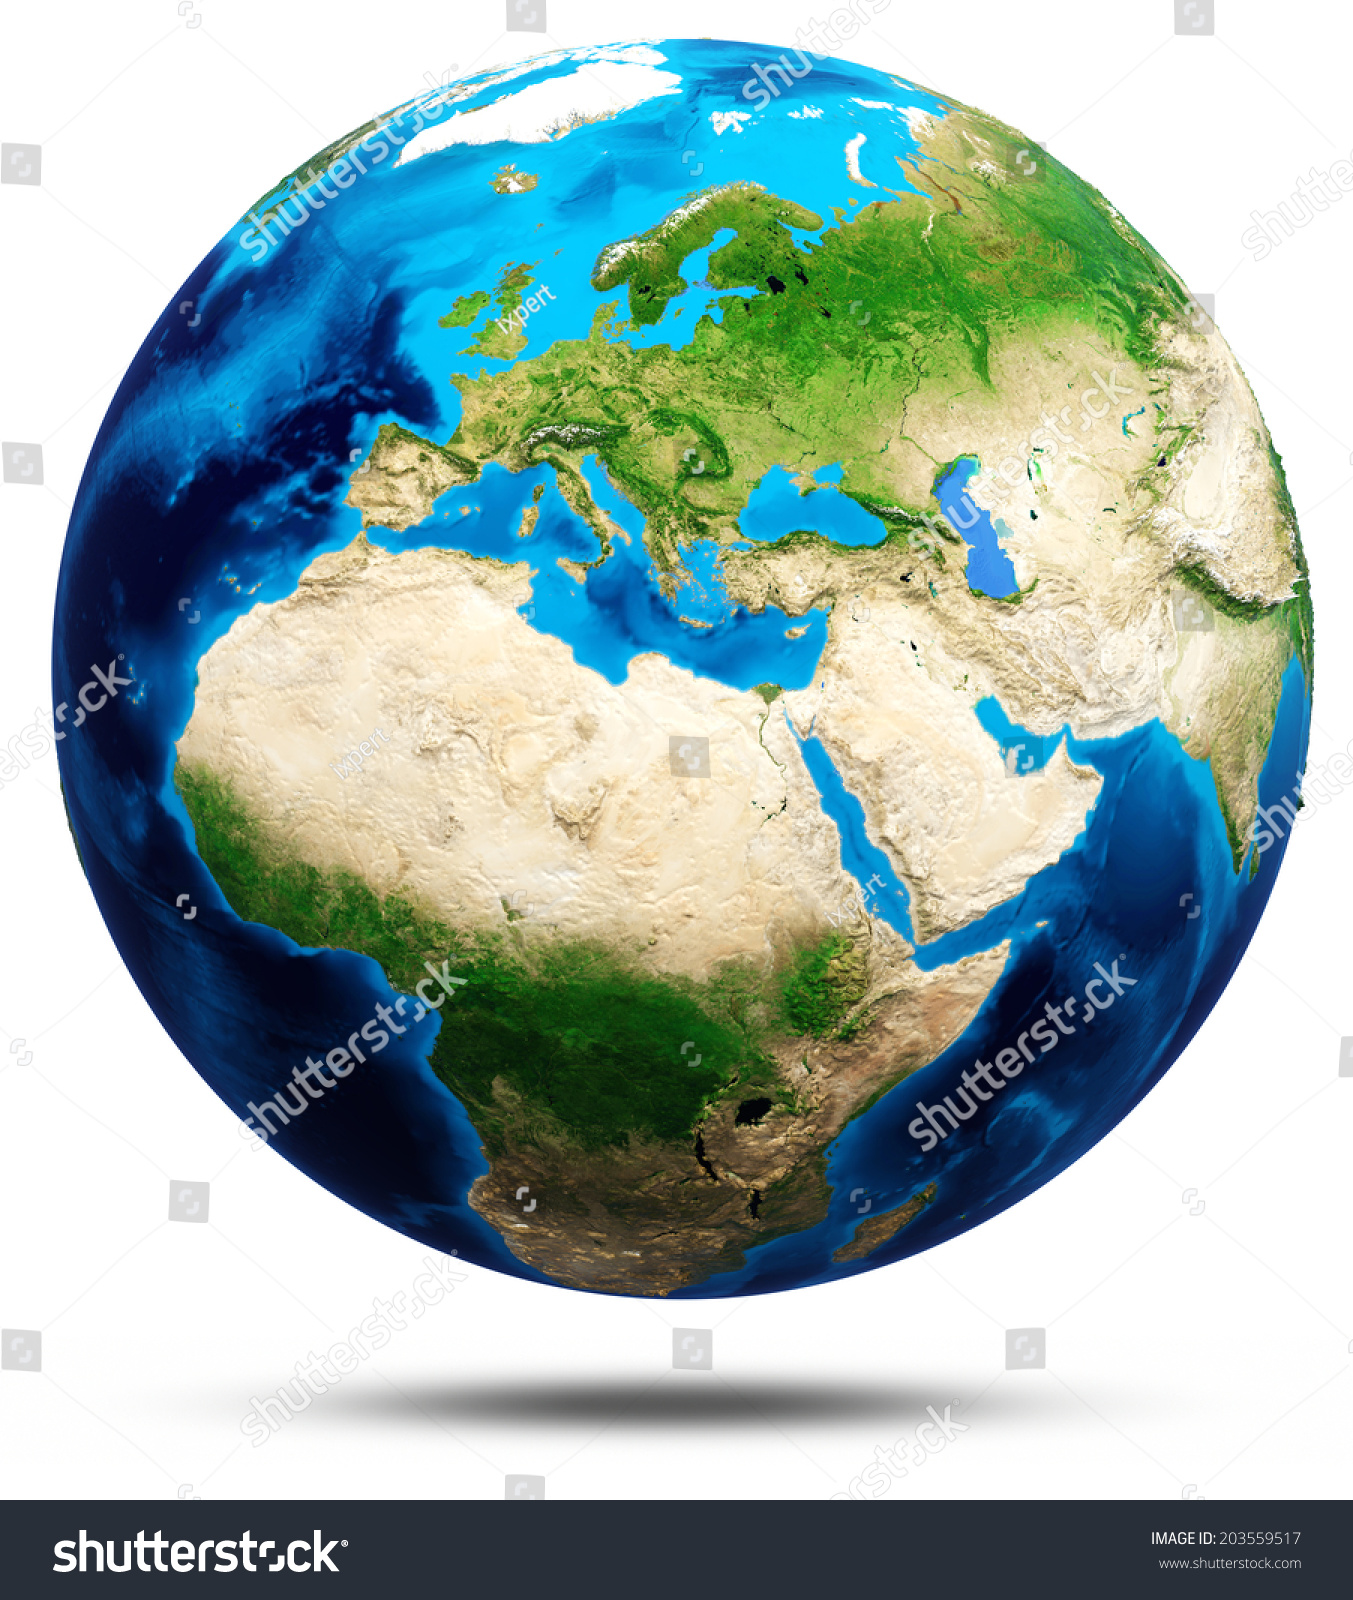 World globe real relief modified maps stock illustration 203559517 world globe real relief modified maps lighting and materials earth globe model gumiabroncs Image collections